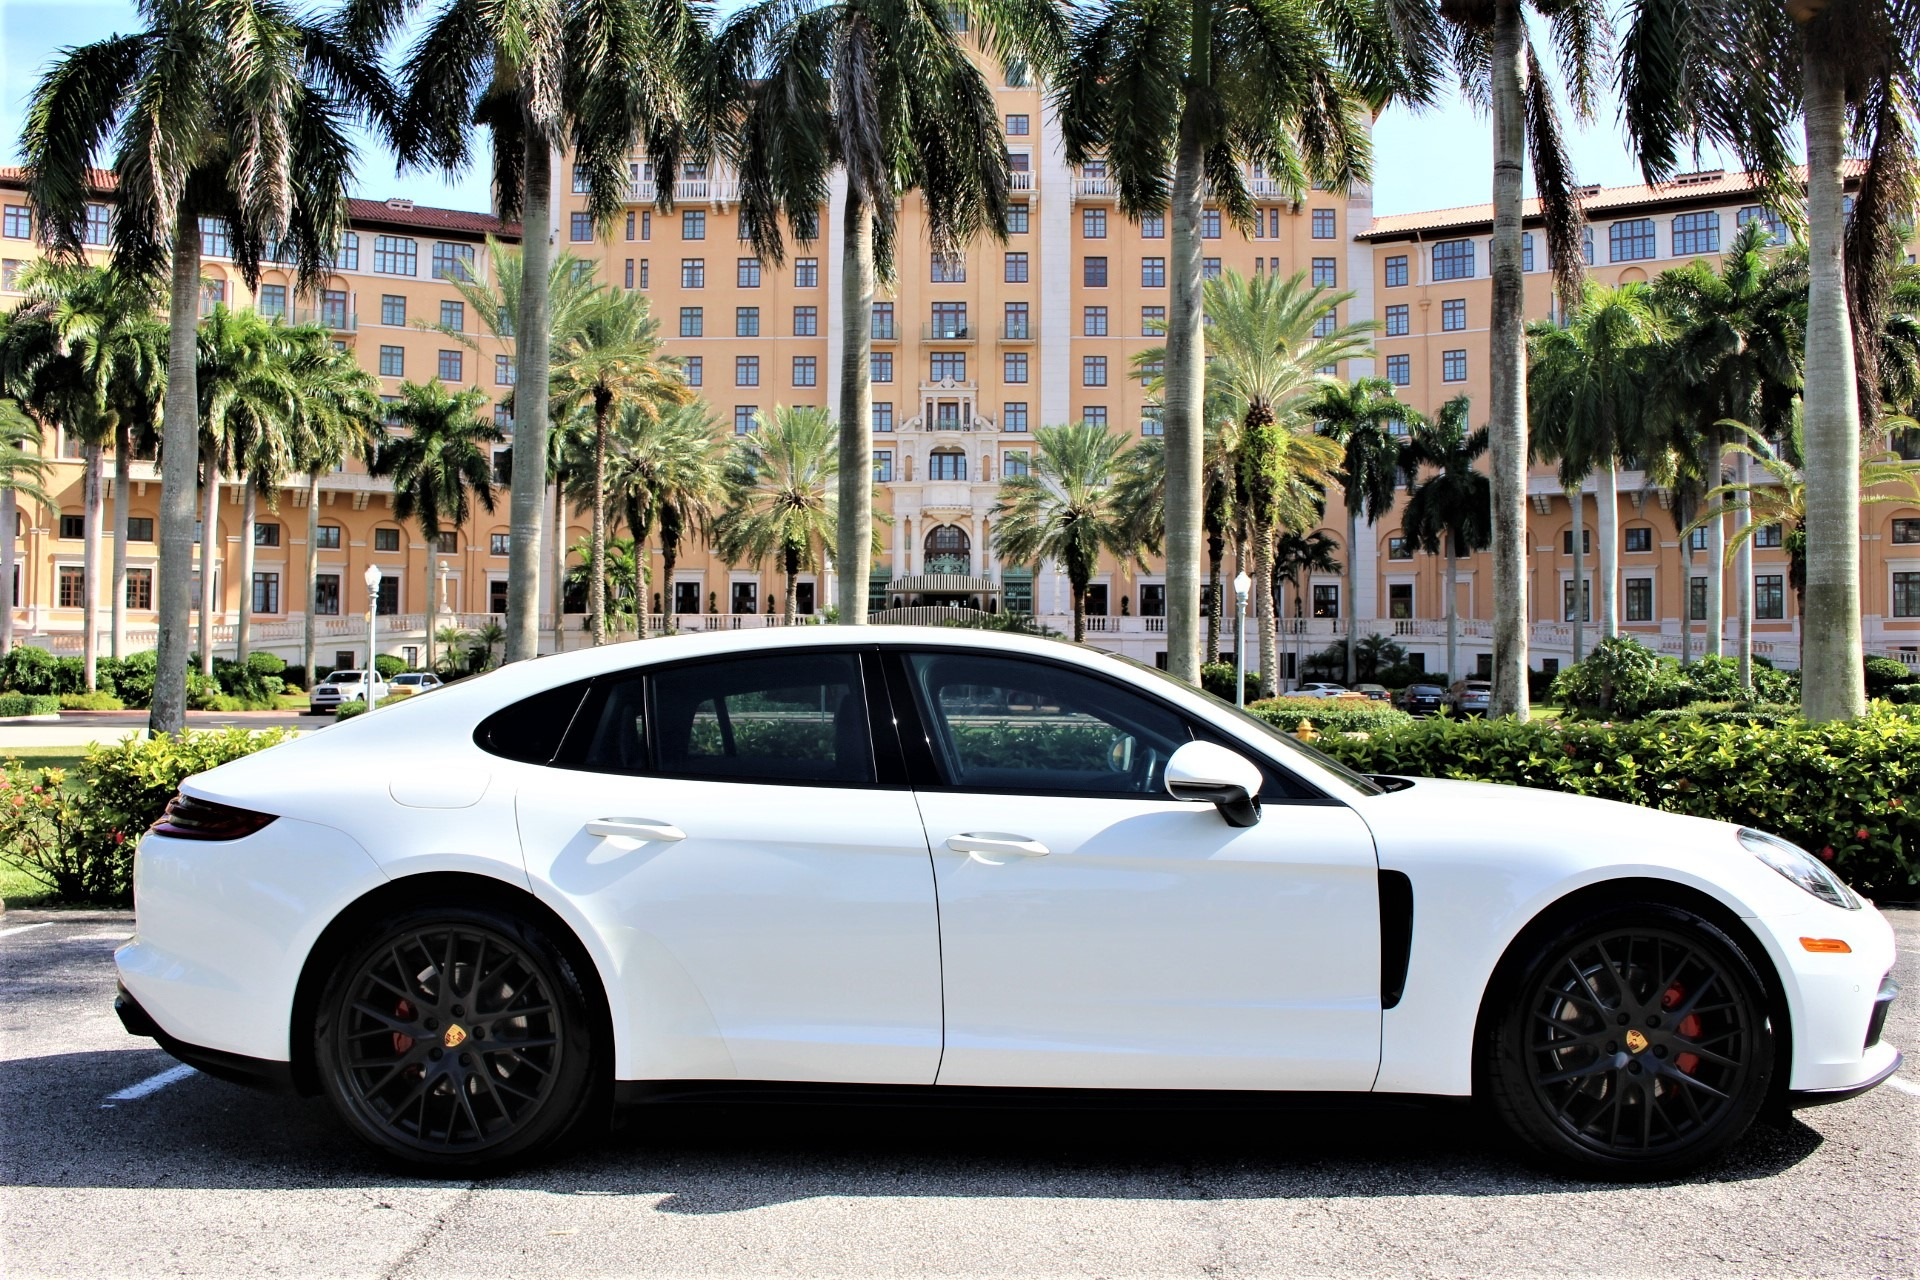 Used 2017 Porsche Panamera for sale Sold at The Gables Sports Cars in Miami FL 33146 1